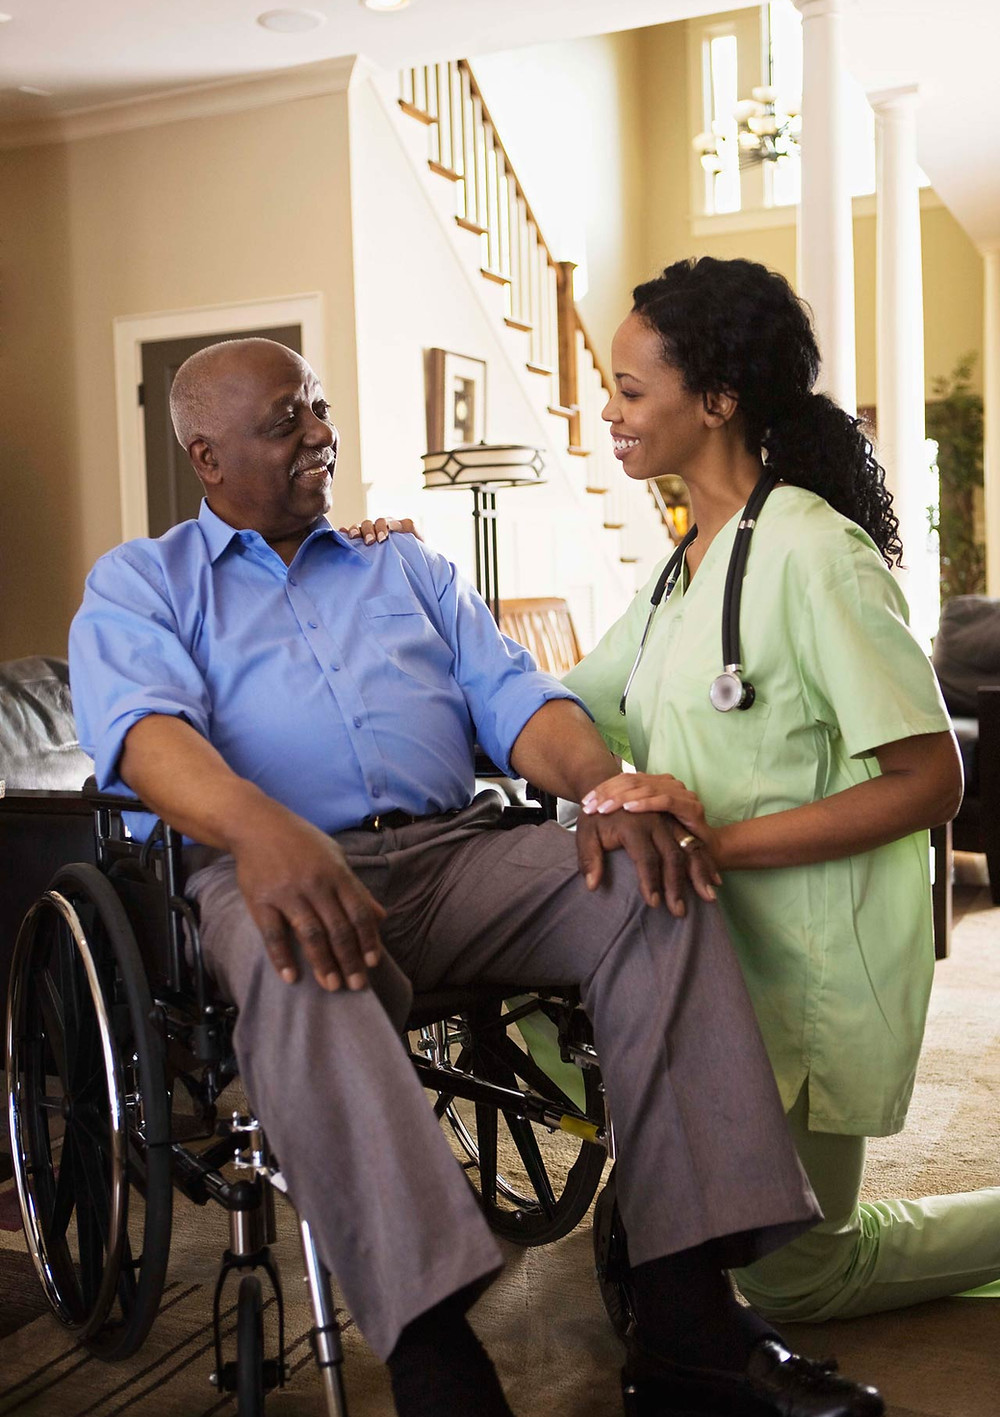 Nurse assisting an elderly man